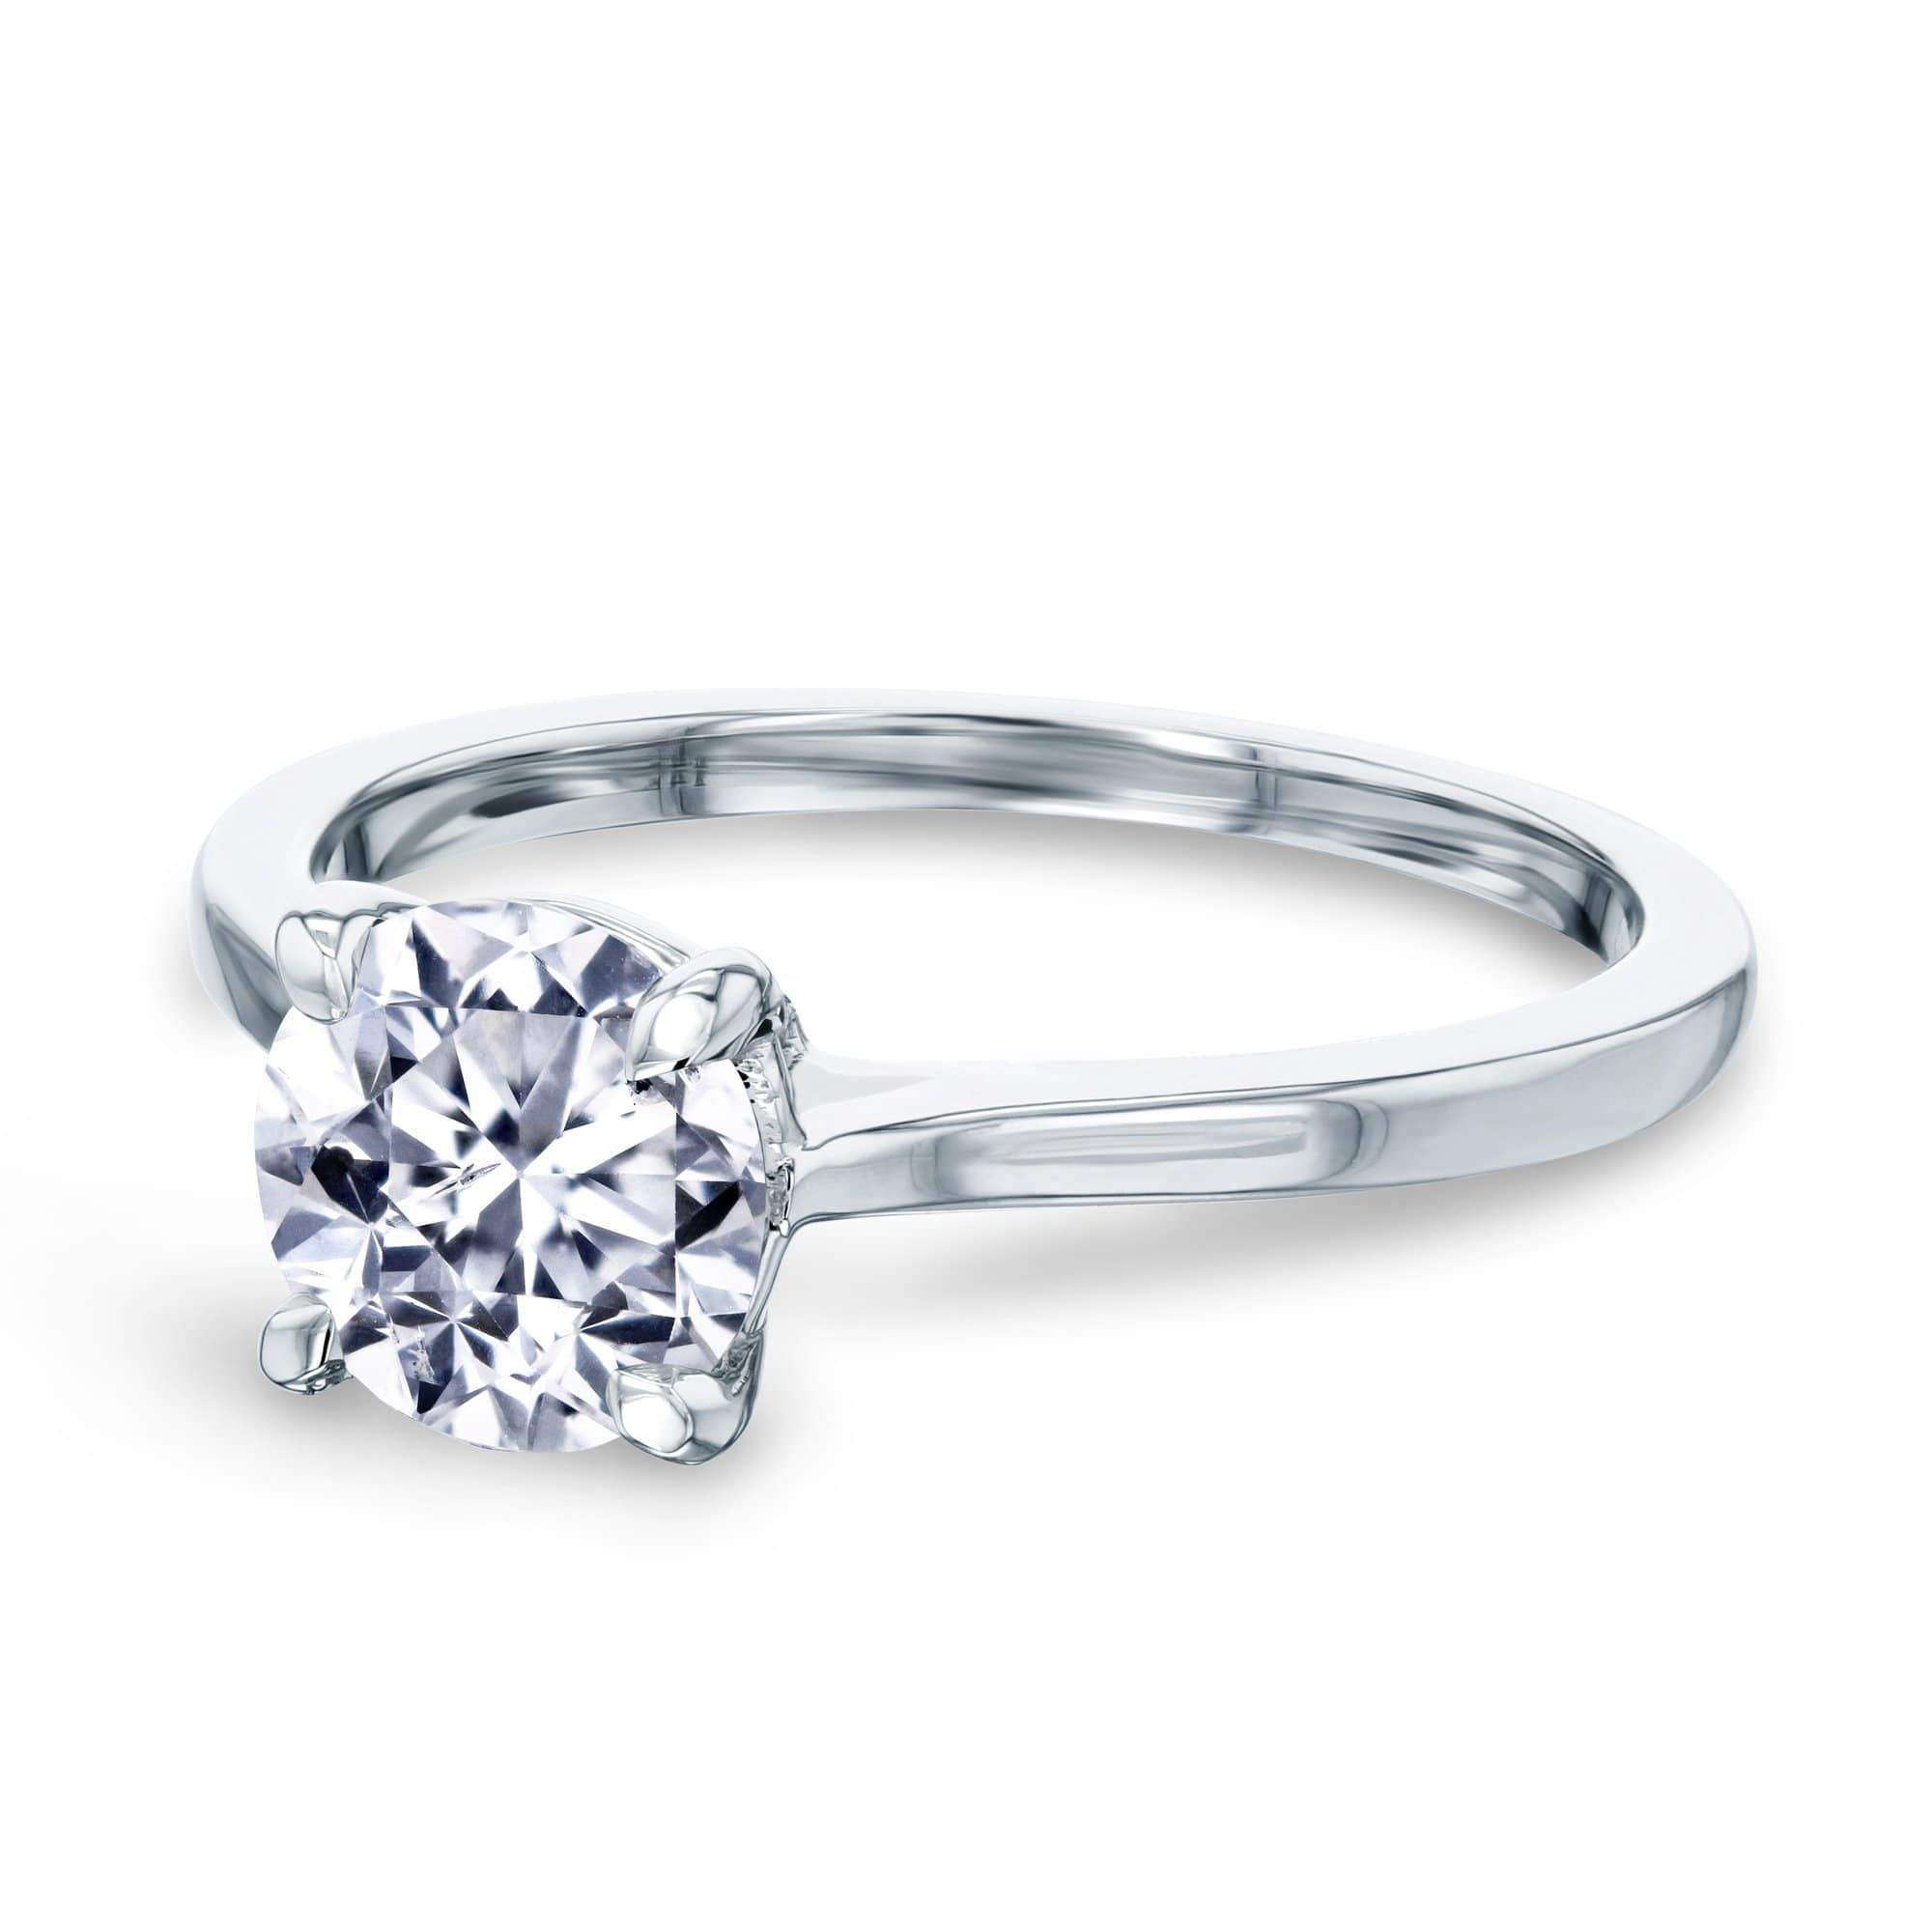 Promos 1ct Round Diamond Solitaire Ring - white-gold 8.0